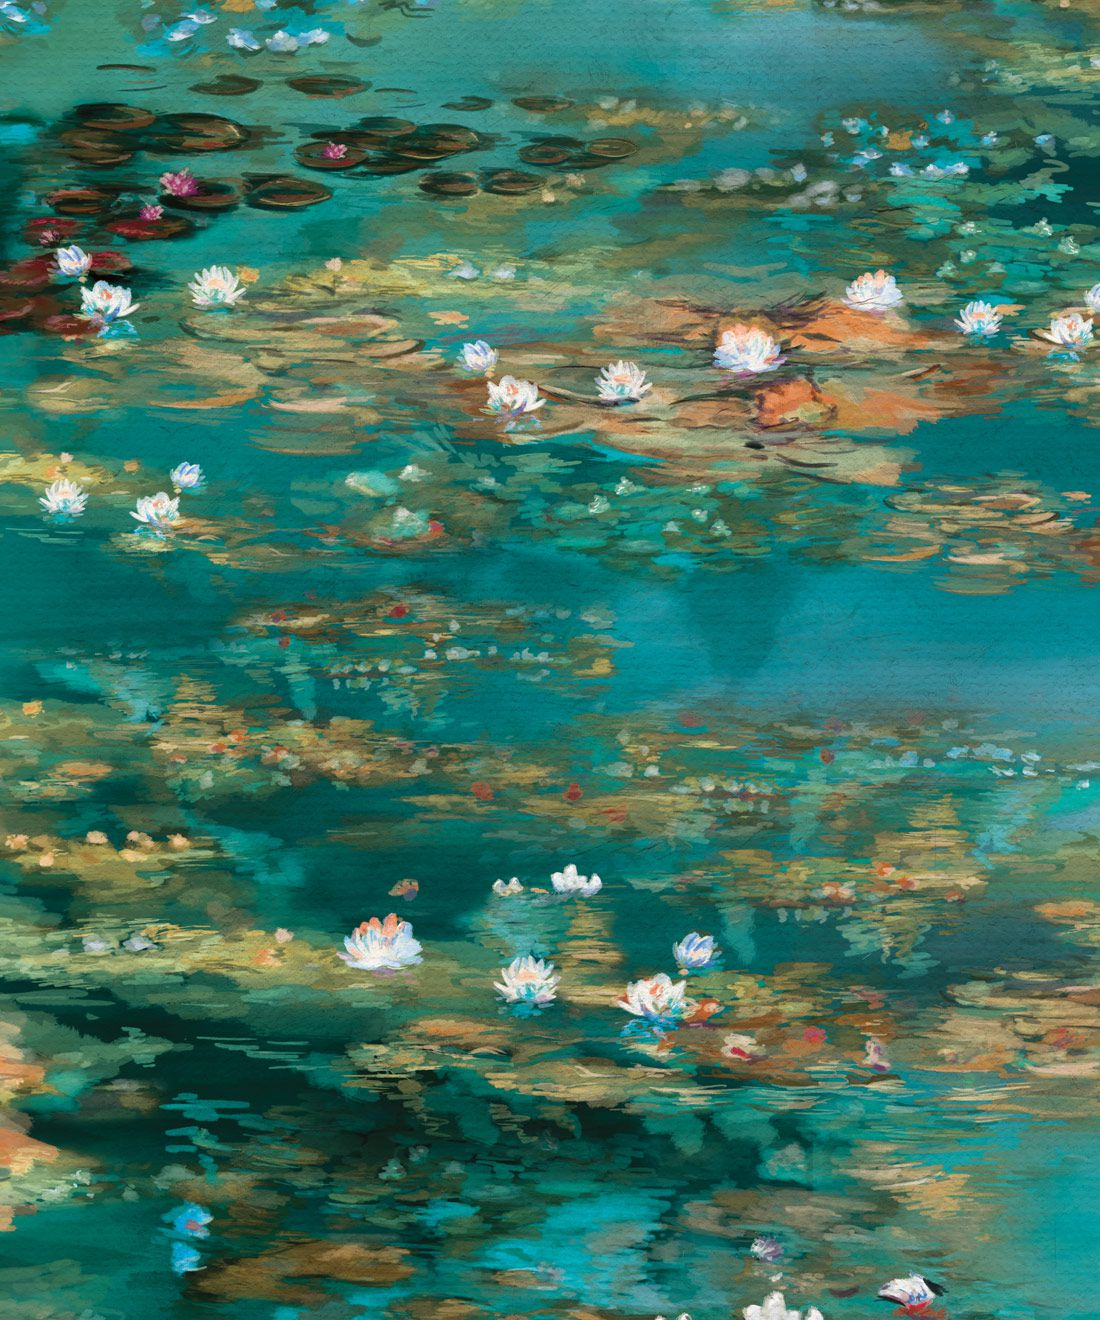 Water Lillies Wallpaper • Abstract Wallpaper • Dreamy Wallpaper • Teal Wallpaper • Swatch